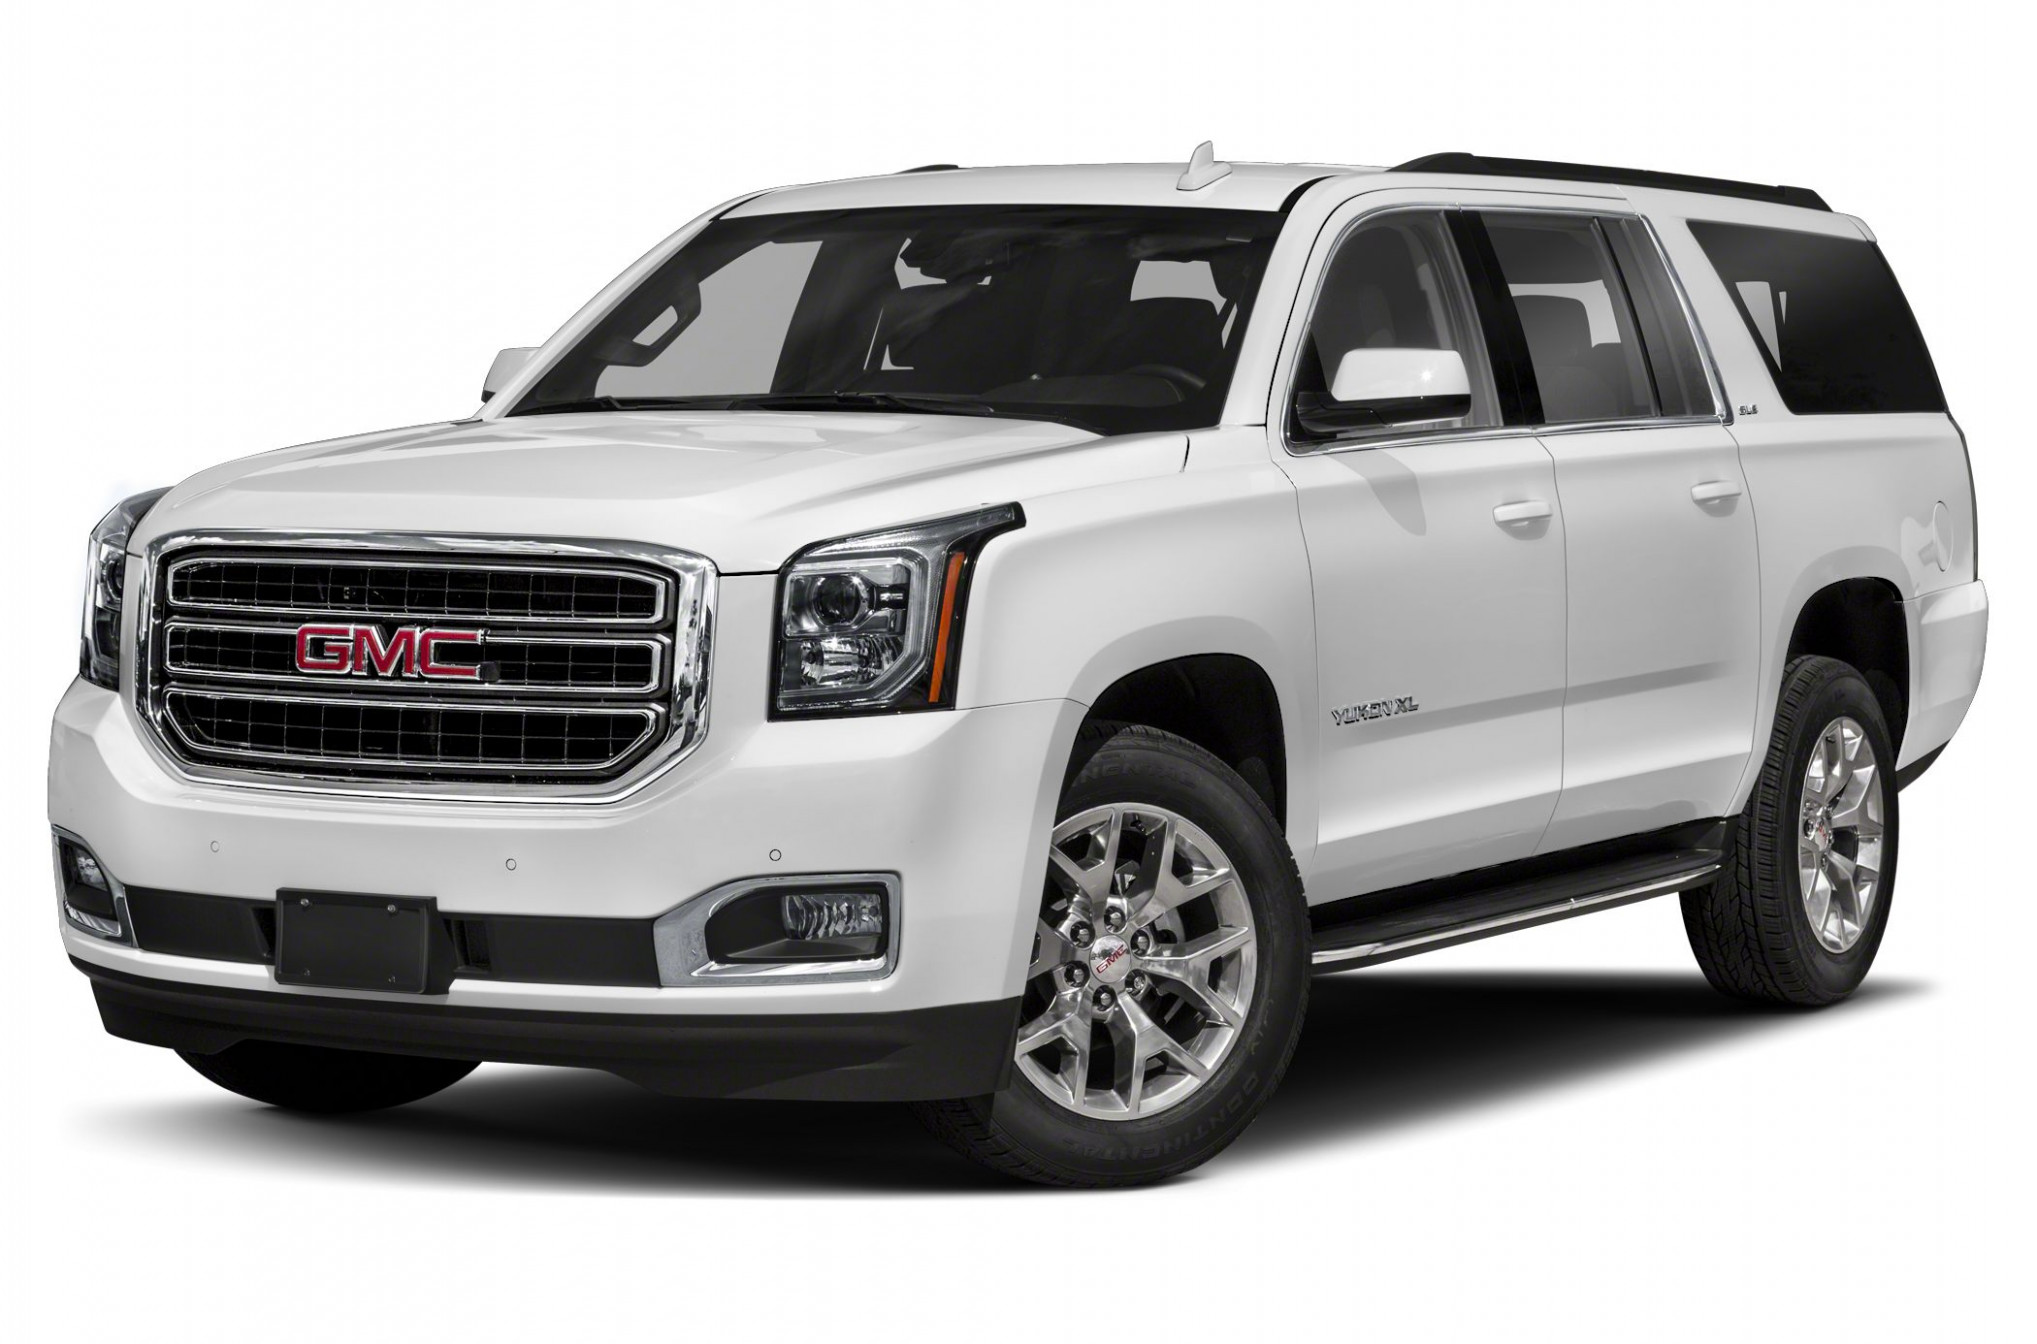 7 GMC Yukon XL SLT Standard Edition 7x7 Equipment - 2020 gmc models